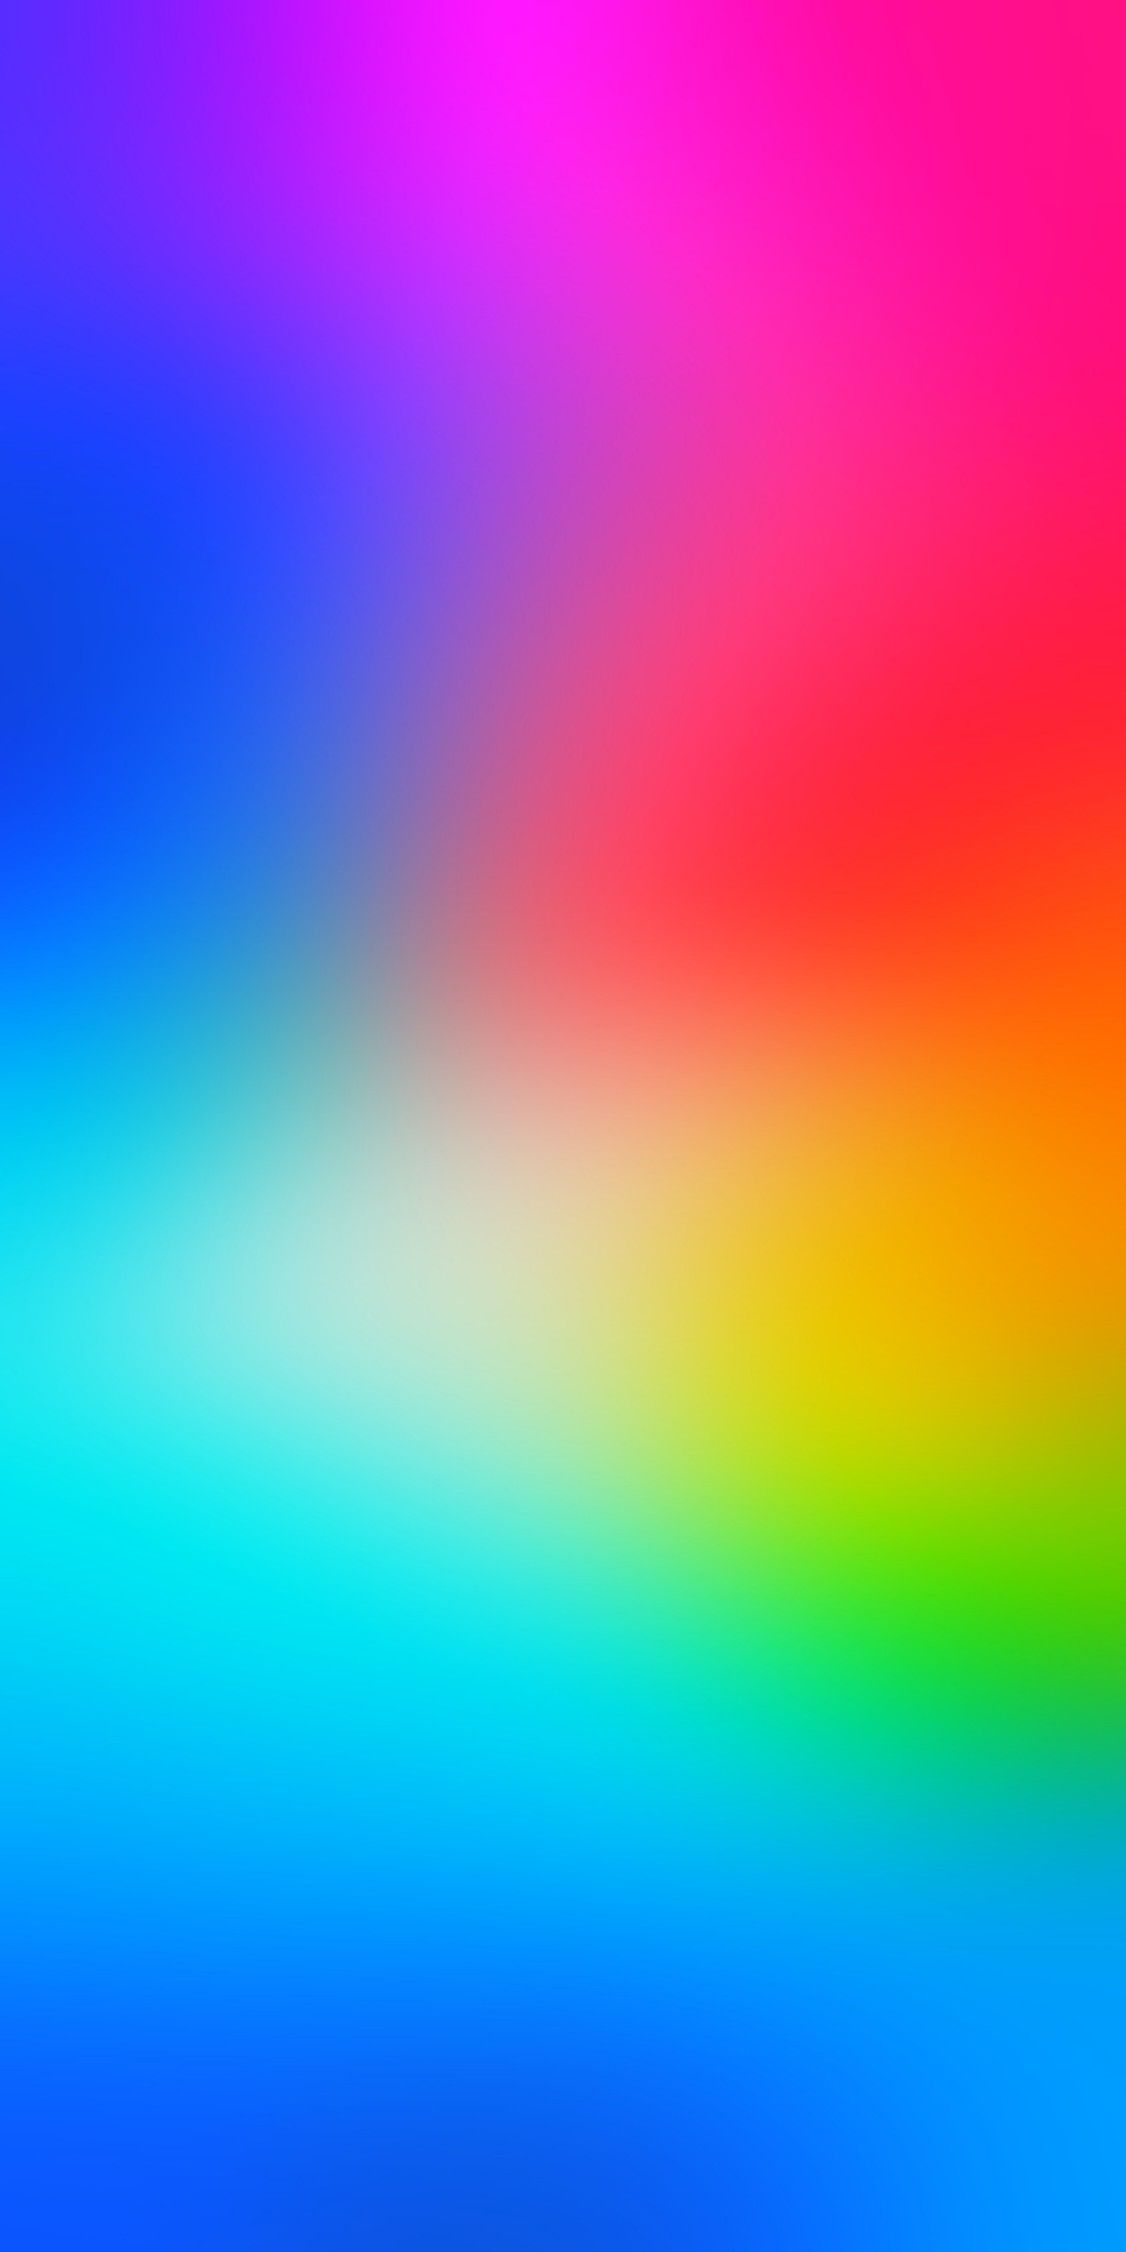 Pin By Bo Willemse On Inspiration Color Wallpaper Iphone Rainbow Wallpaper Backgrounds Rainbow Wallpaper Iphone